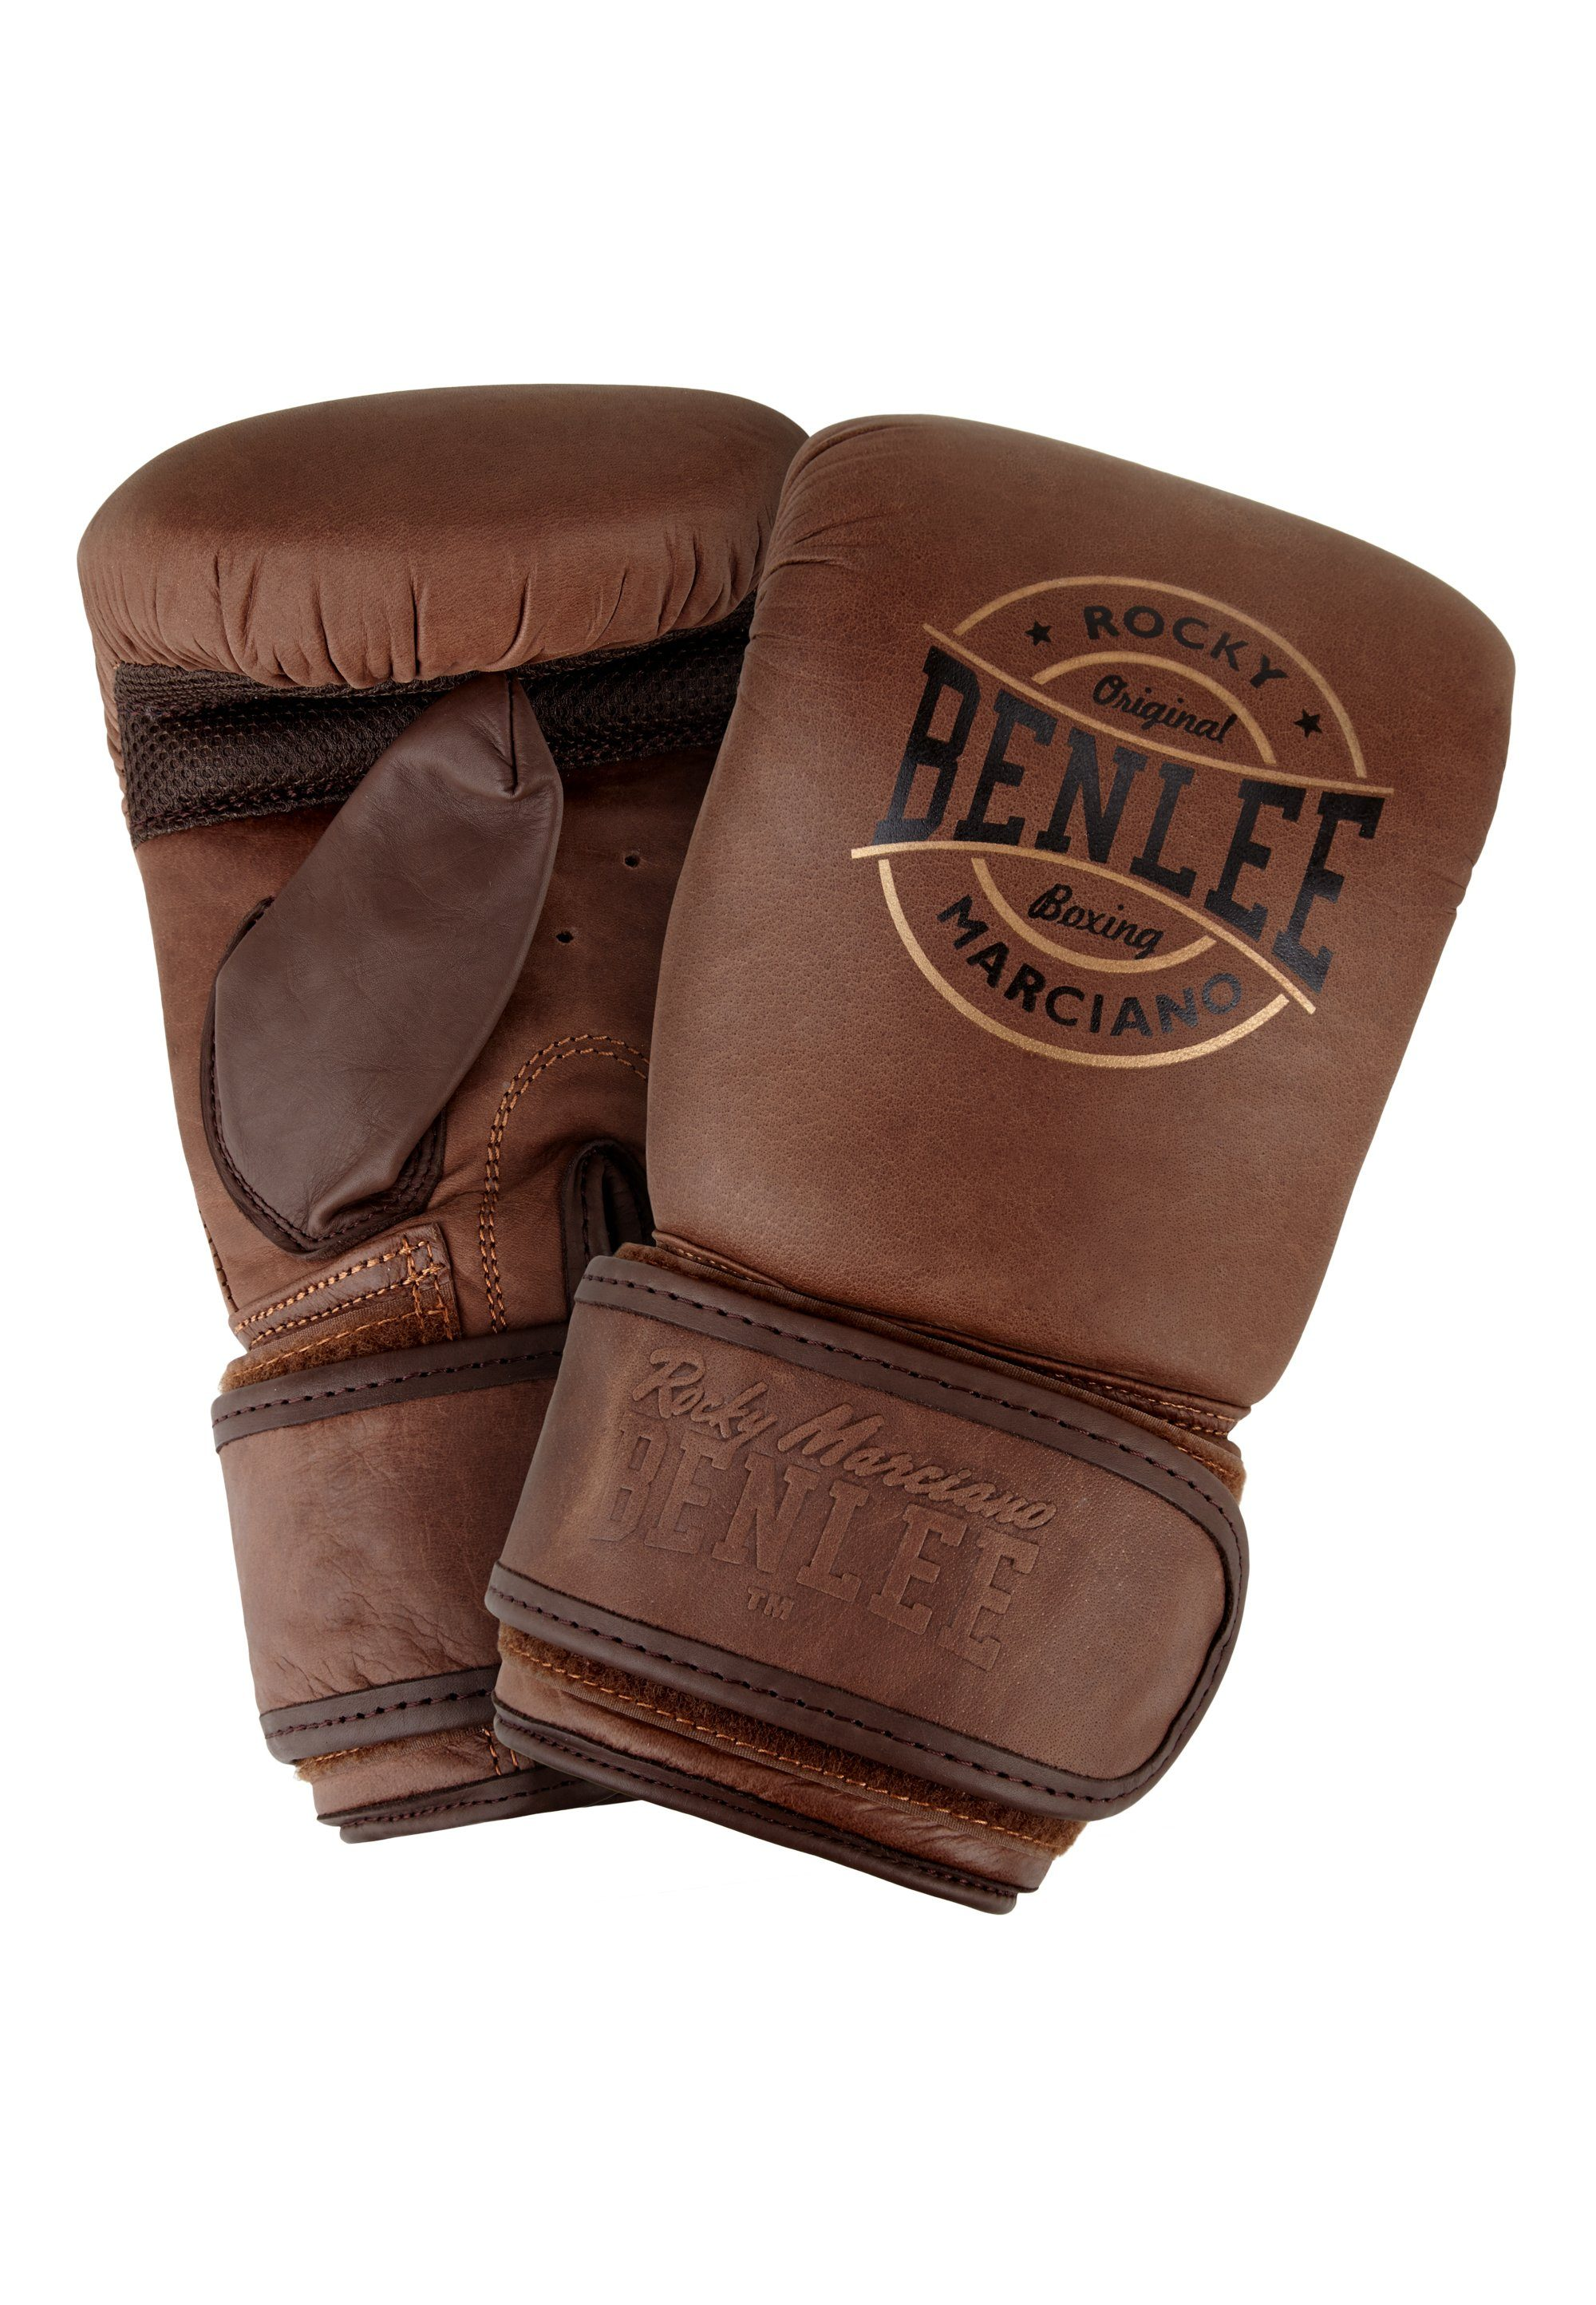 Benlee Rocky Marciano Boxhandschuhe »DALEY«